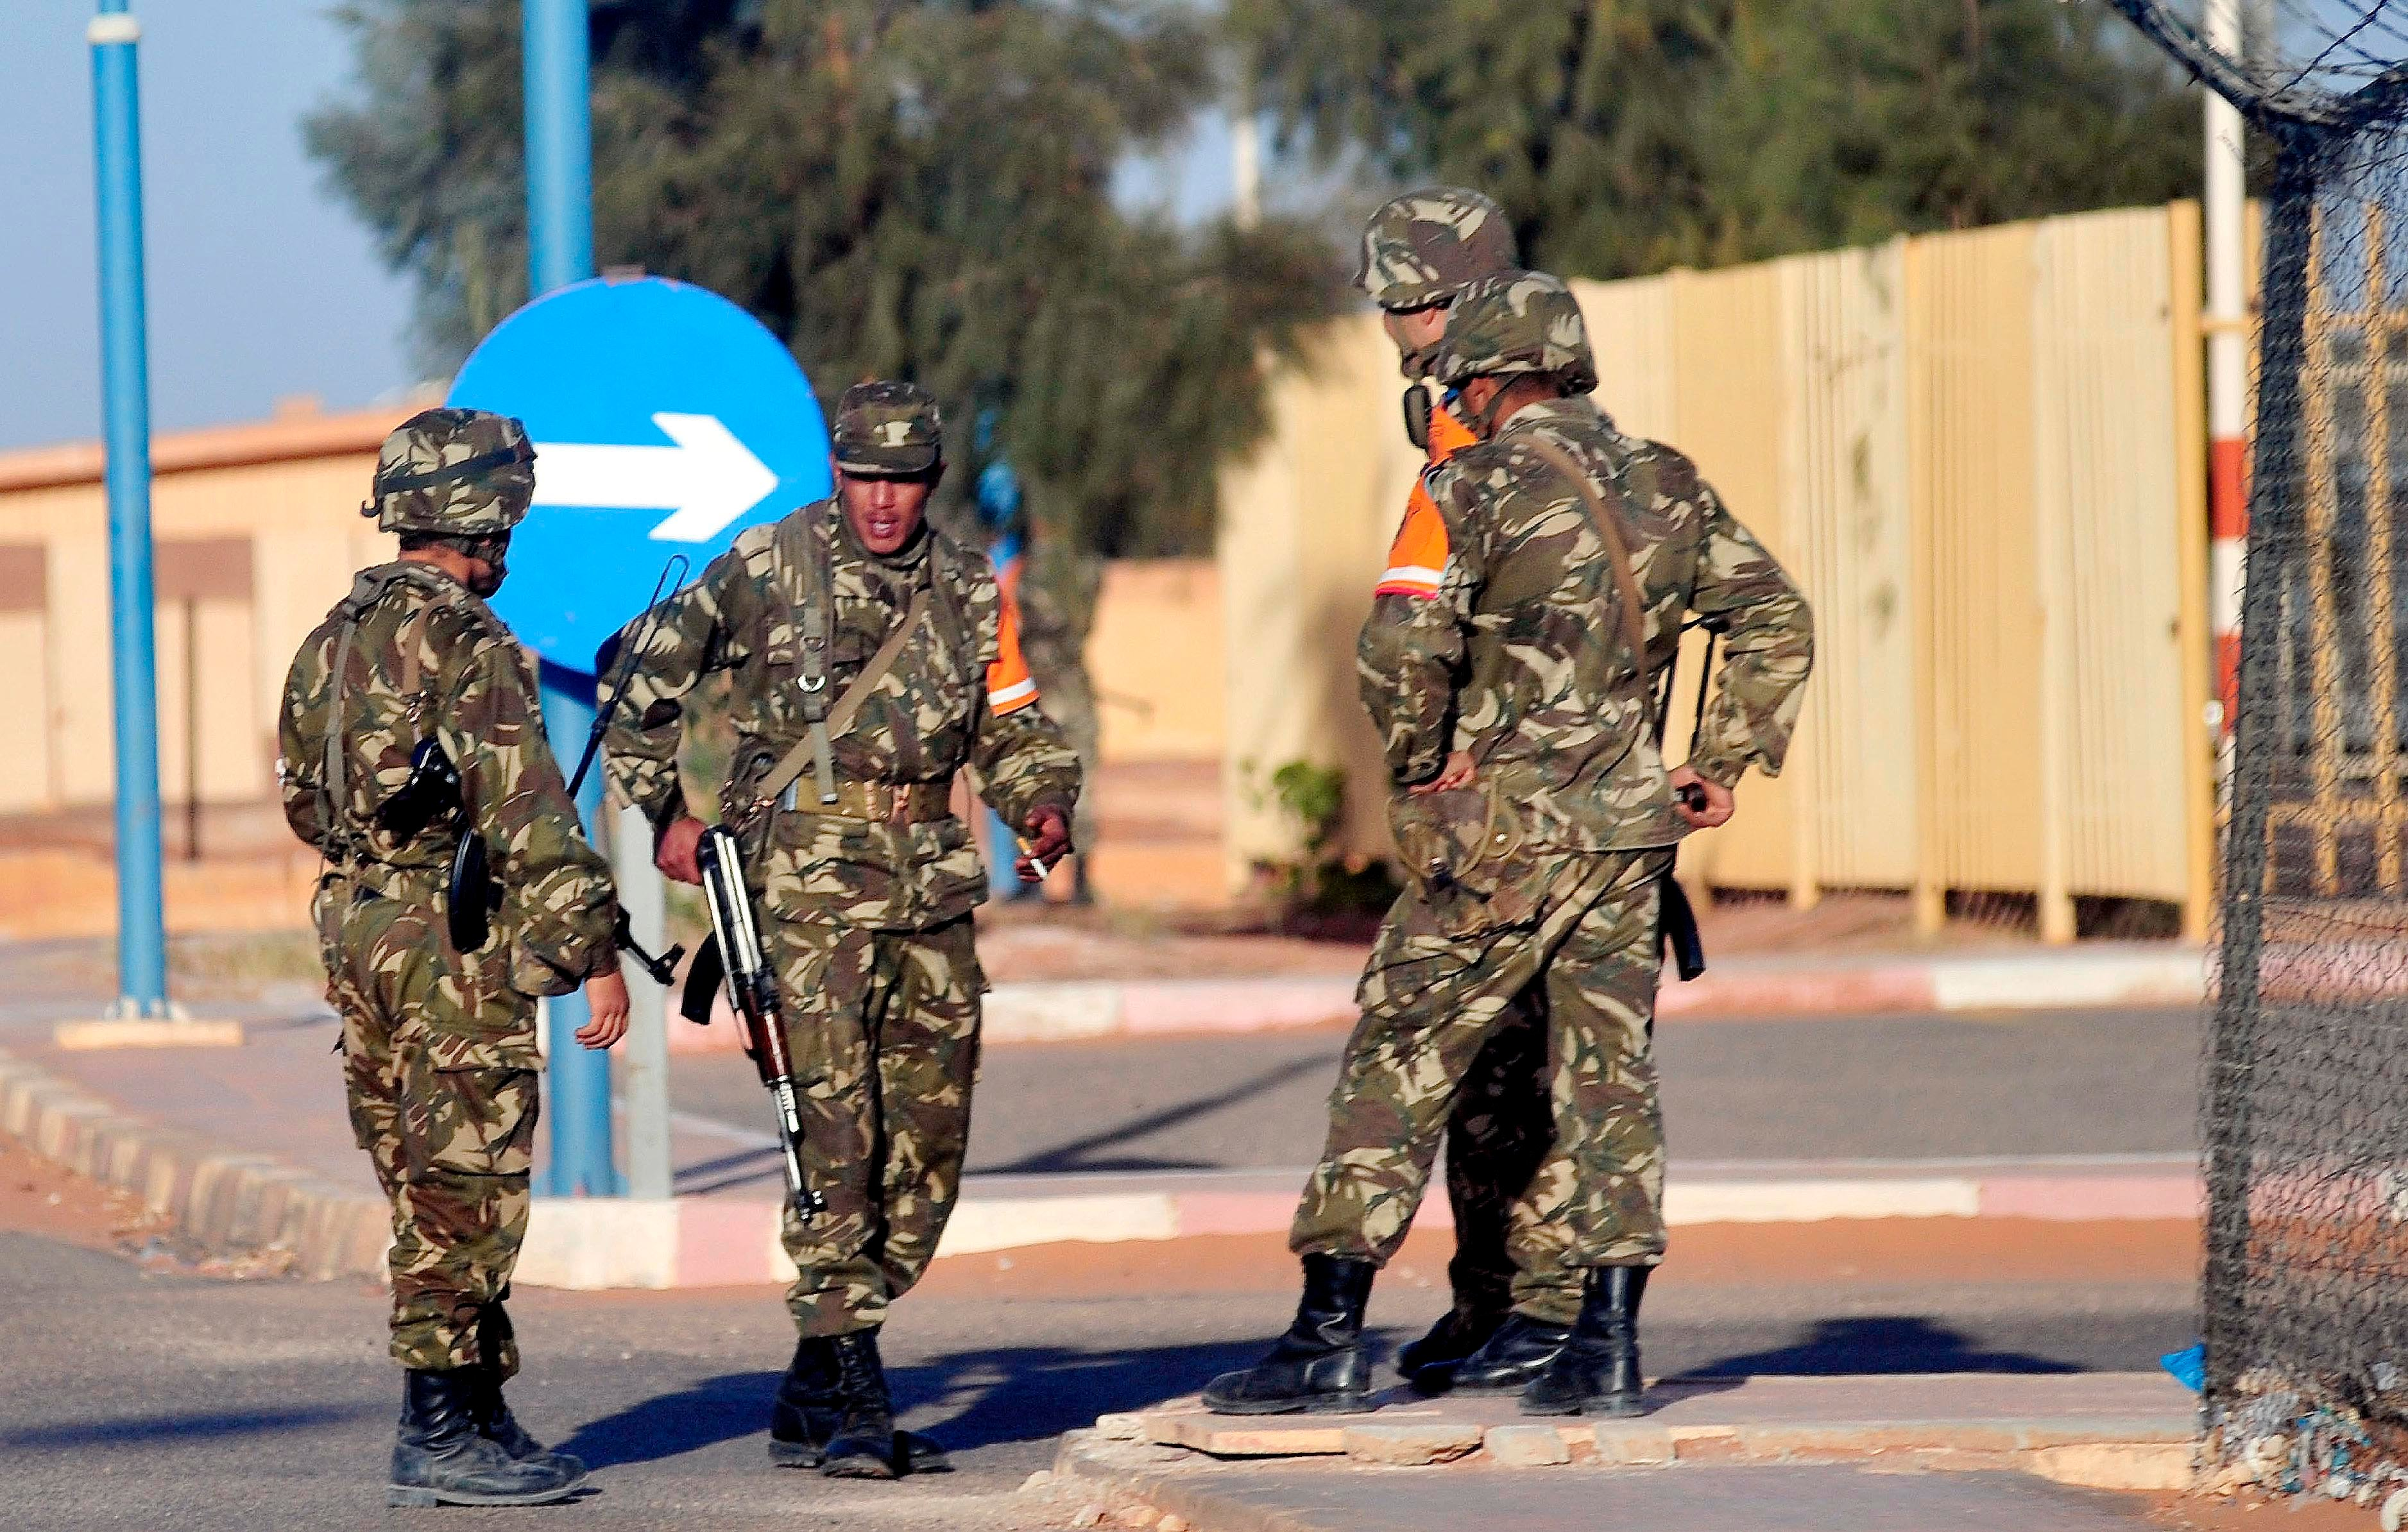 (Credit: AP Photos) In this photo released by China's Xinhua News Agency, Algerian soldiers secure the airport in Ain Amenas, Algeria, before the departure of freed hostages Saturday, Jan. 19, 2013.